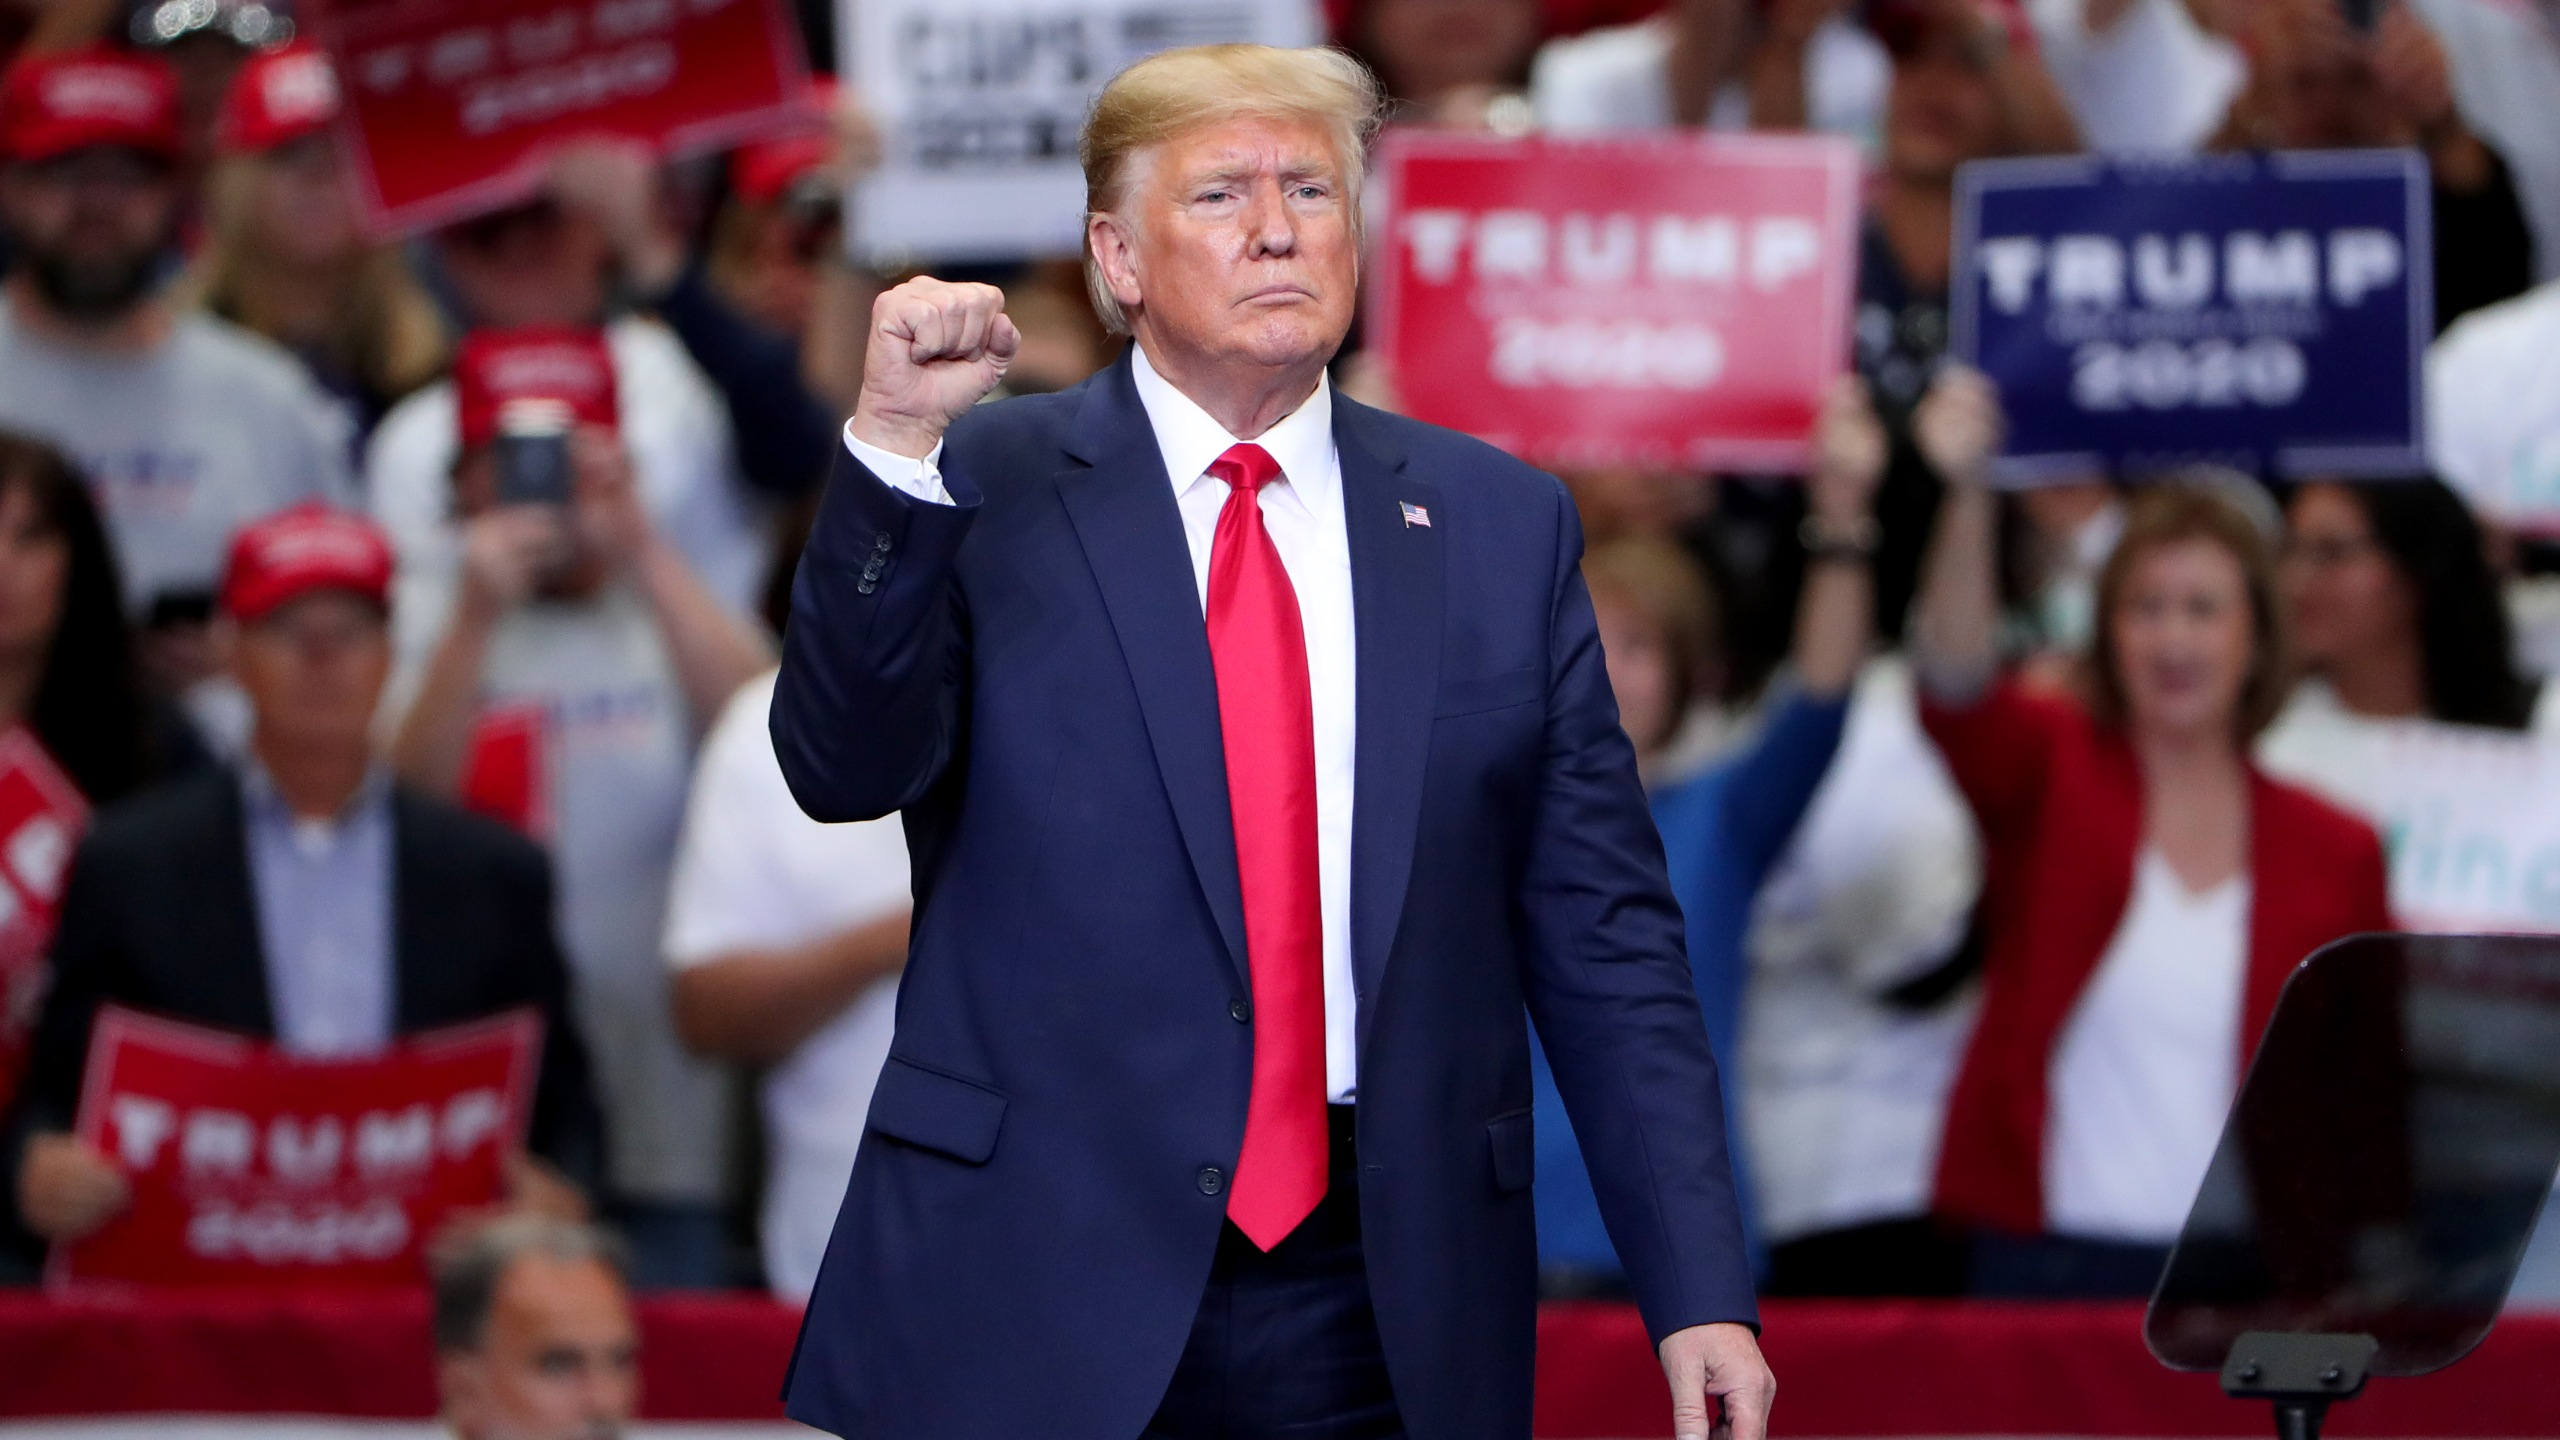 """Donald Trump speaks during a """"Keep America Great"""" Campaign Rally at American Airlines Center in Dallas on Oct. 17, 2019. (Credit: Tom Pennington/Getty Images)"""